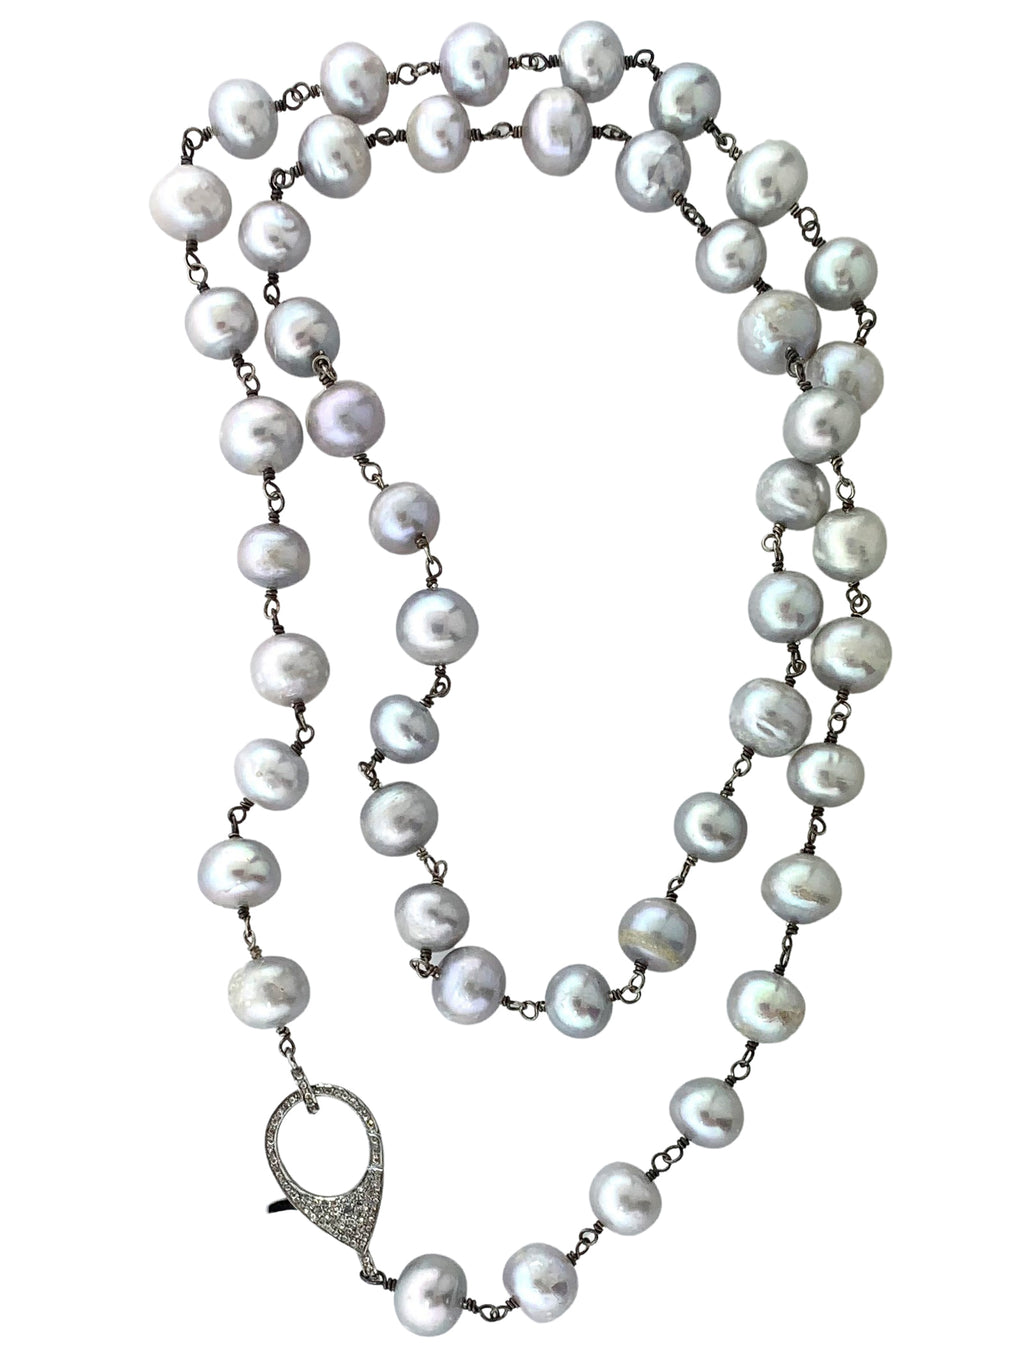 Sterling Silver Wire Wrapped Grey Freshwater Pearls with Pave Diamond Clasp